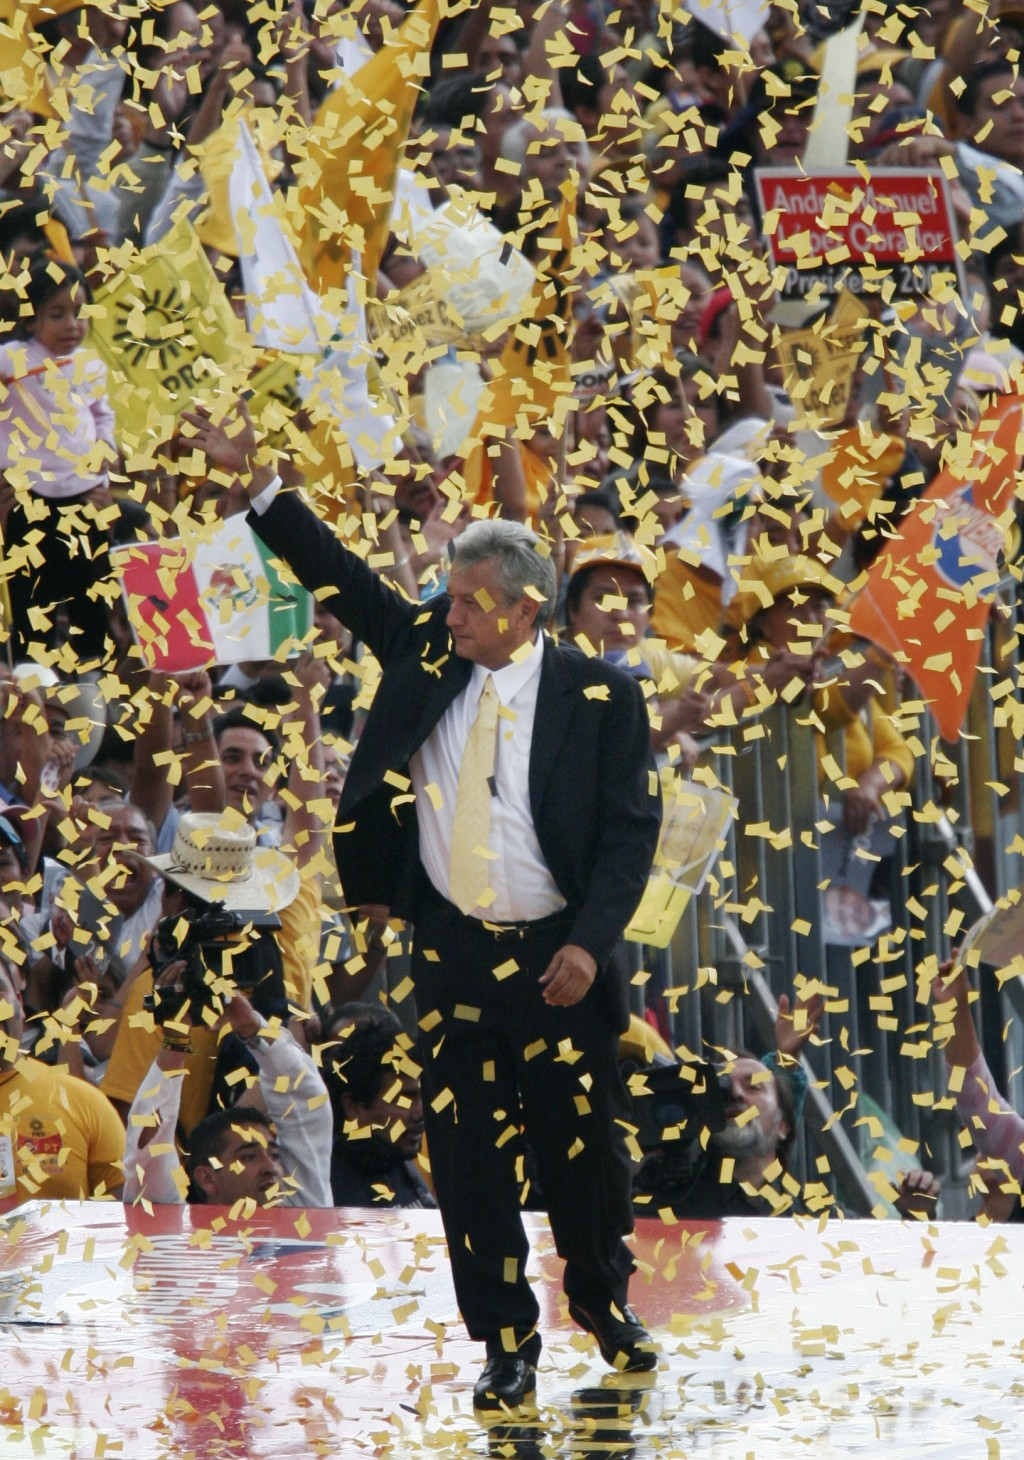 FILE - In this June 28, 2006 file photo, presidential candidate Andres Manuel Lopez Obrador of the Democratic Revolution Party, PRD, waves to supporte...